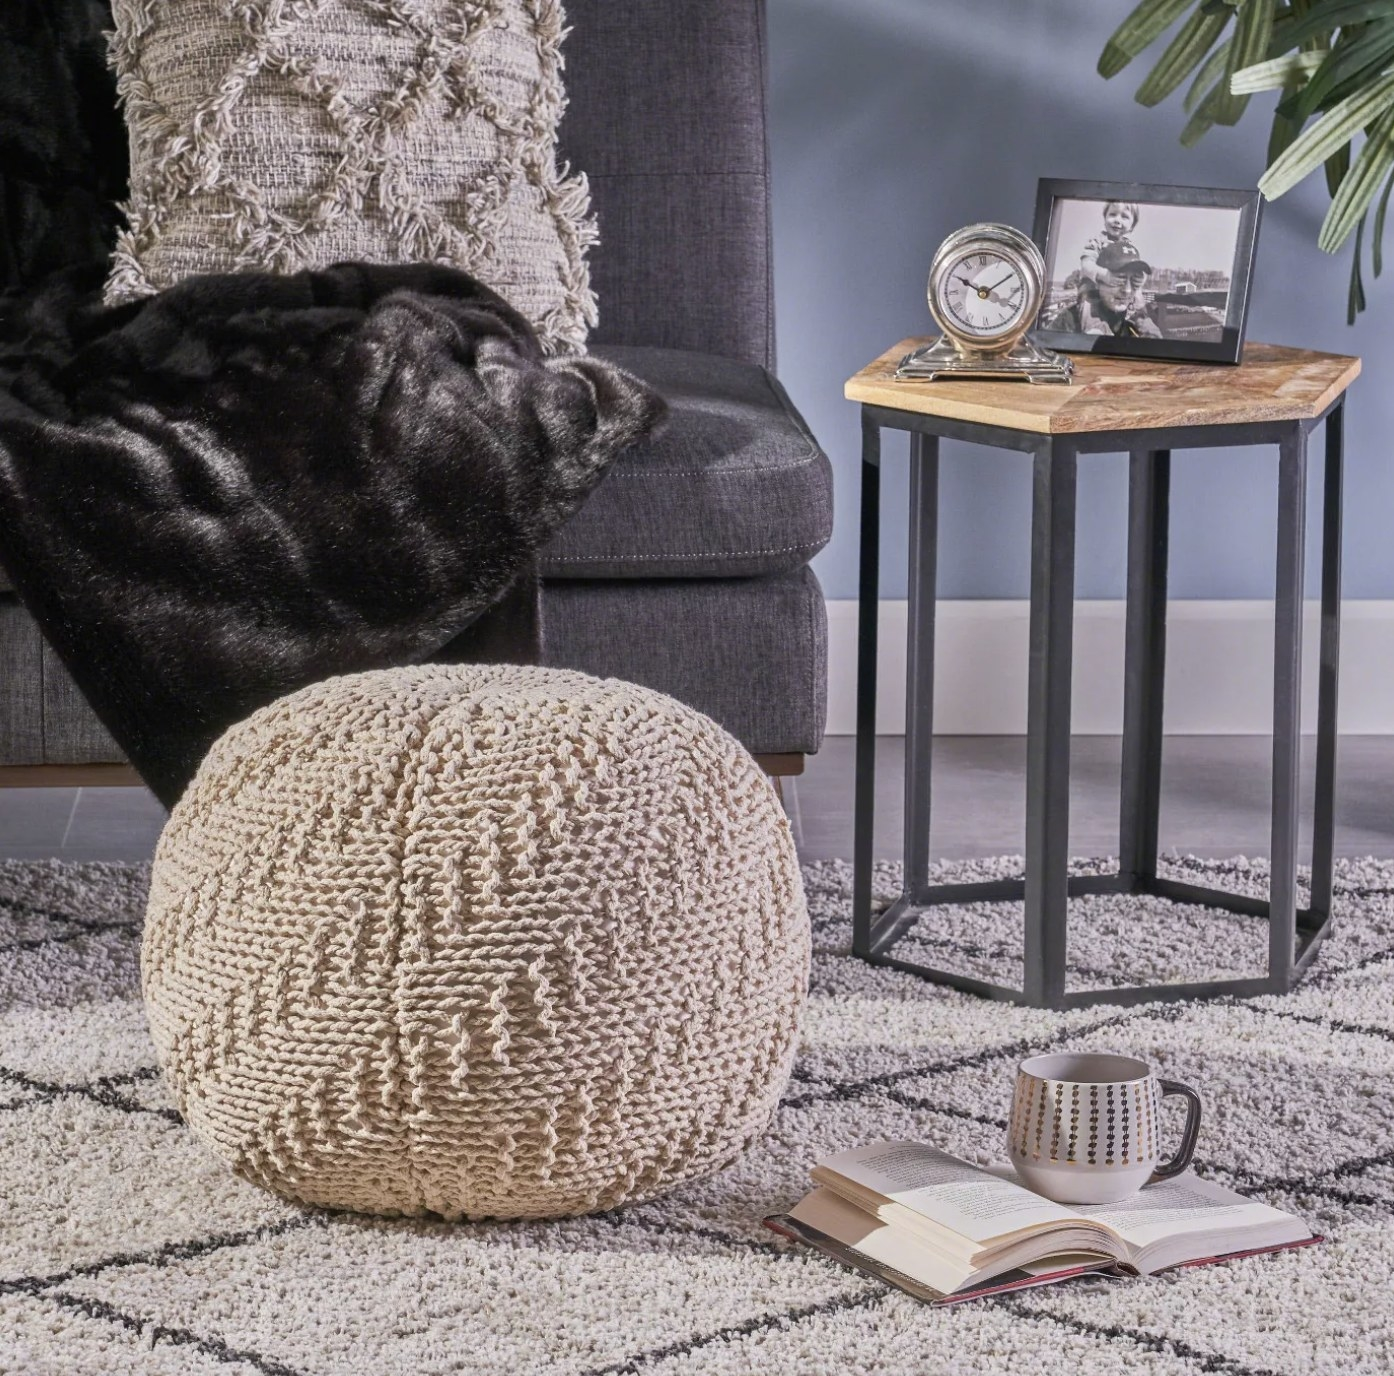 A cream knitted pouf